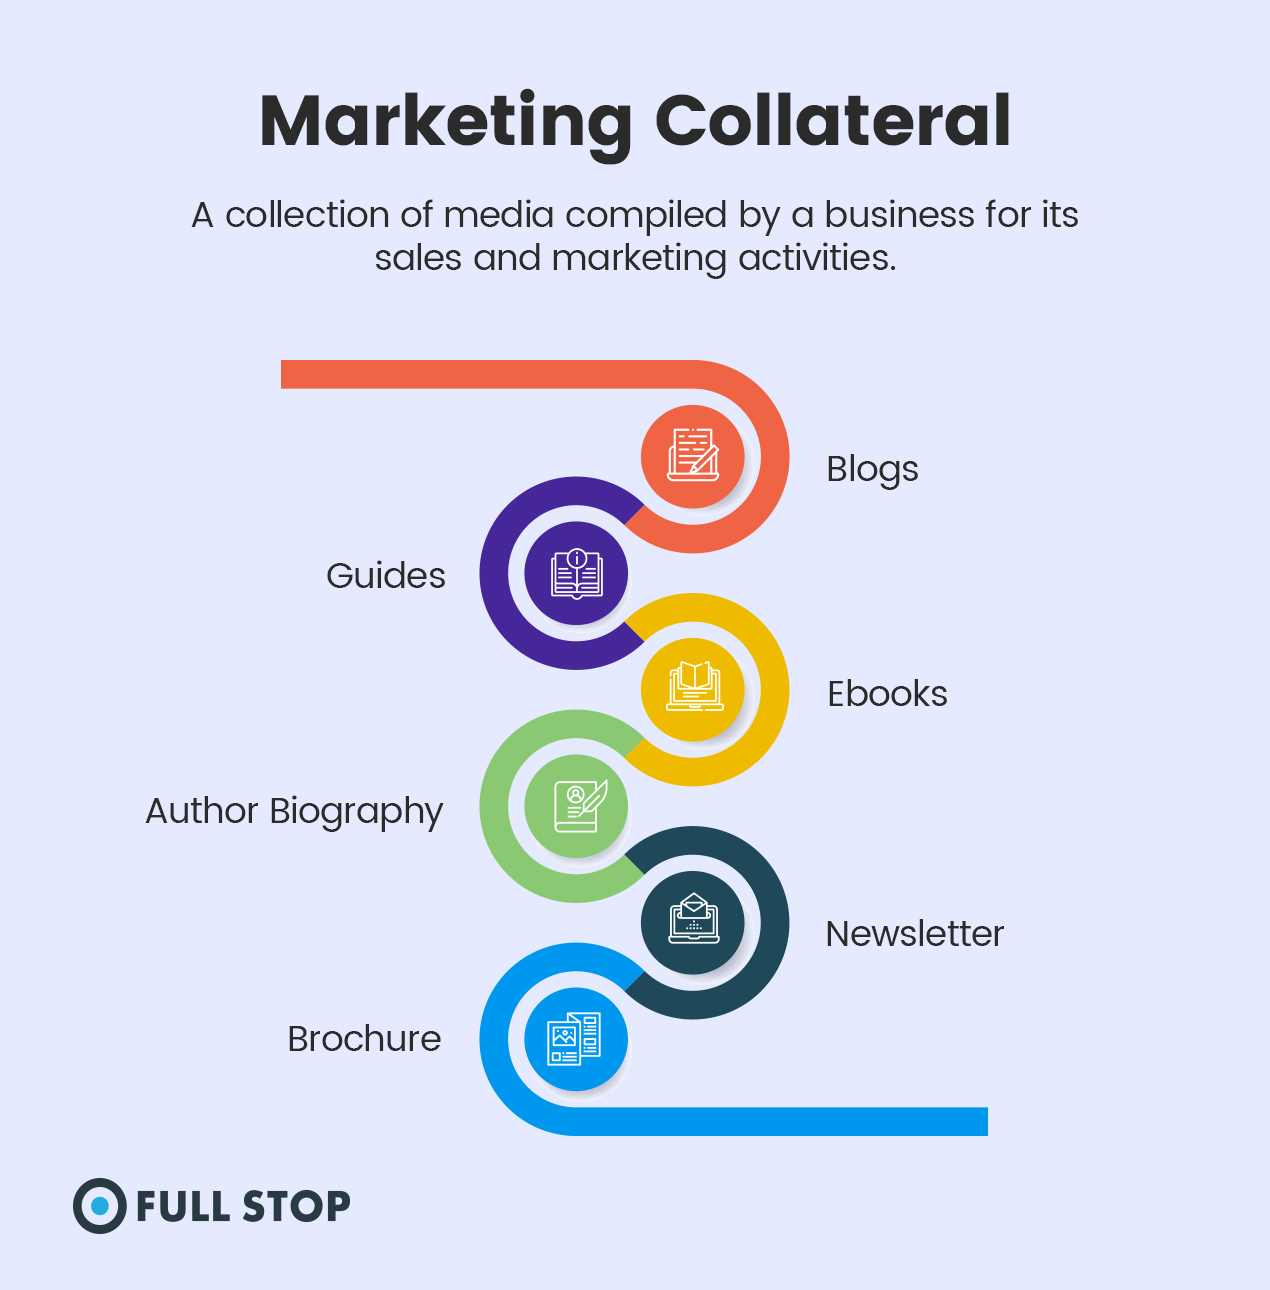 Marketing Collateral - What Is Marketing Collateral?